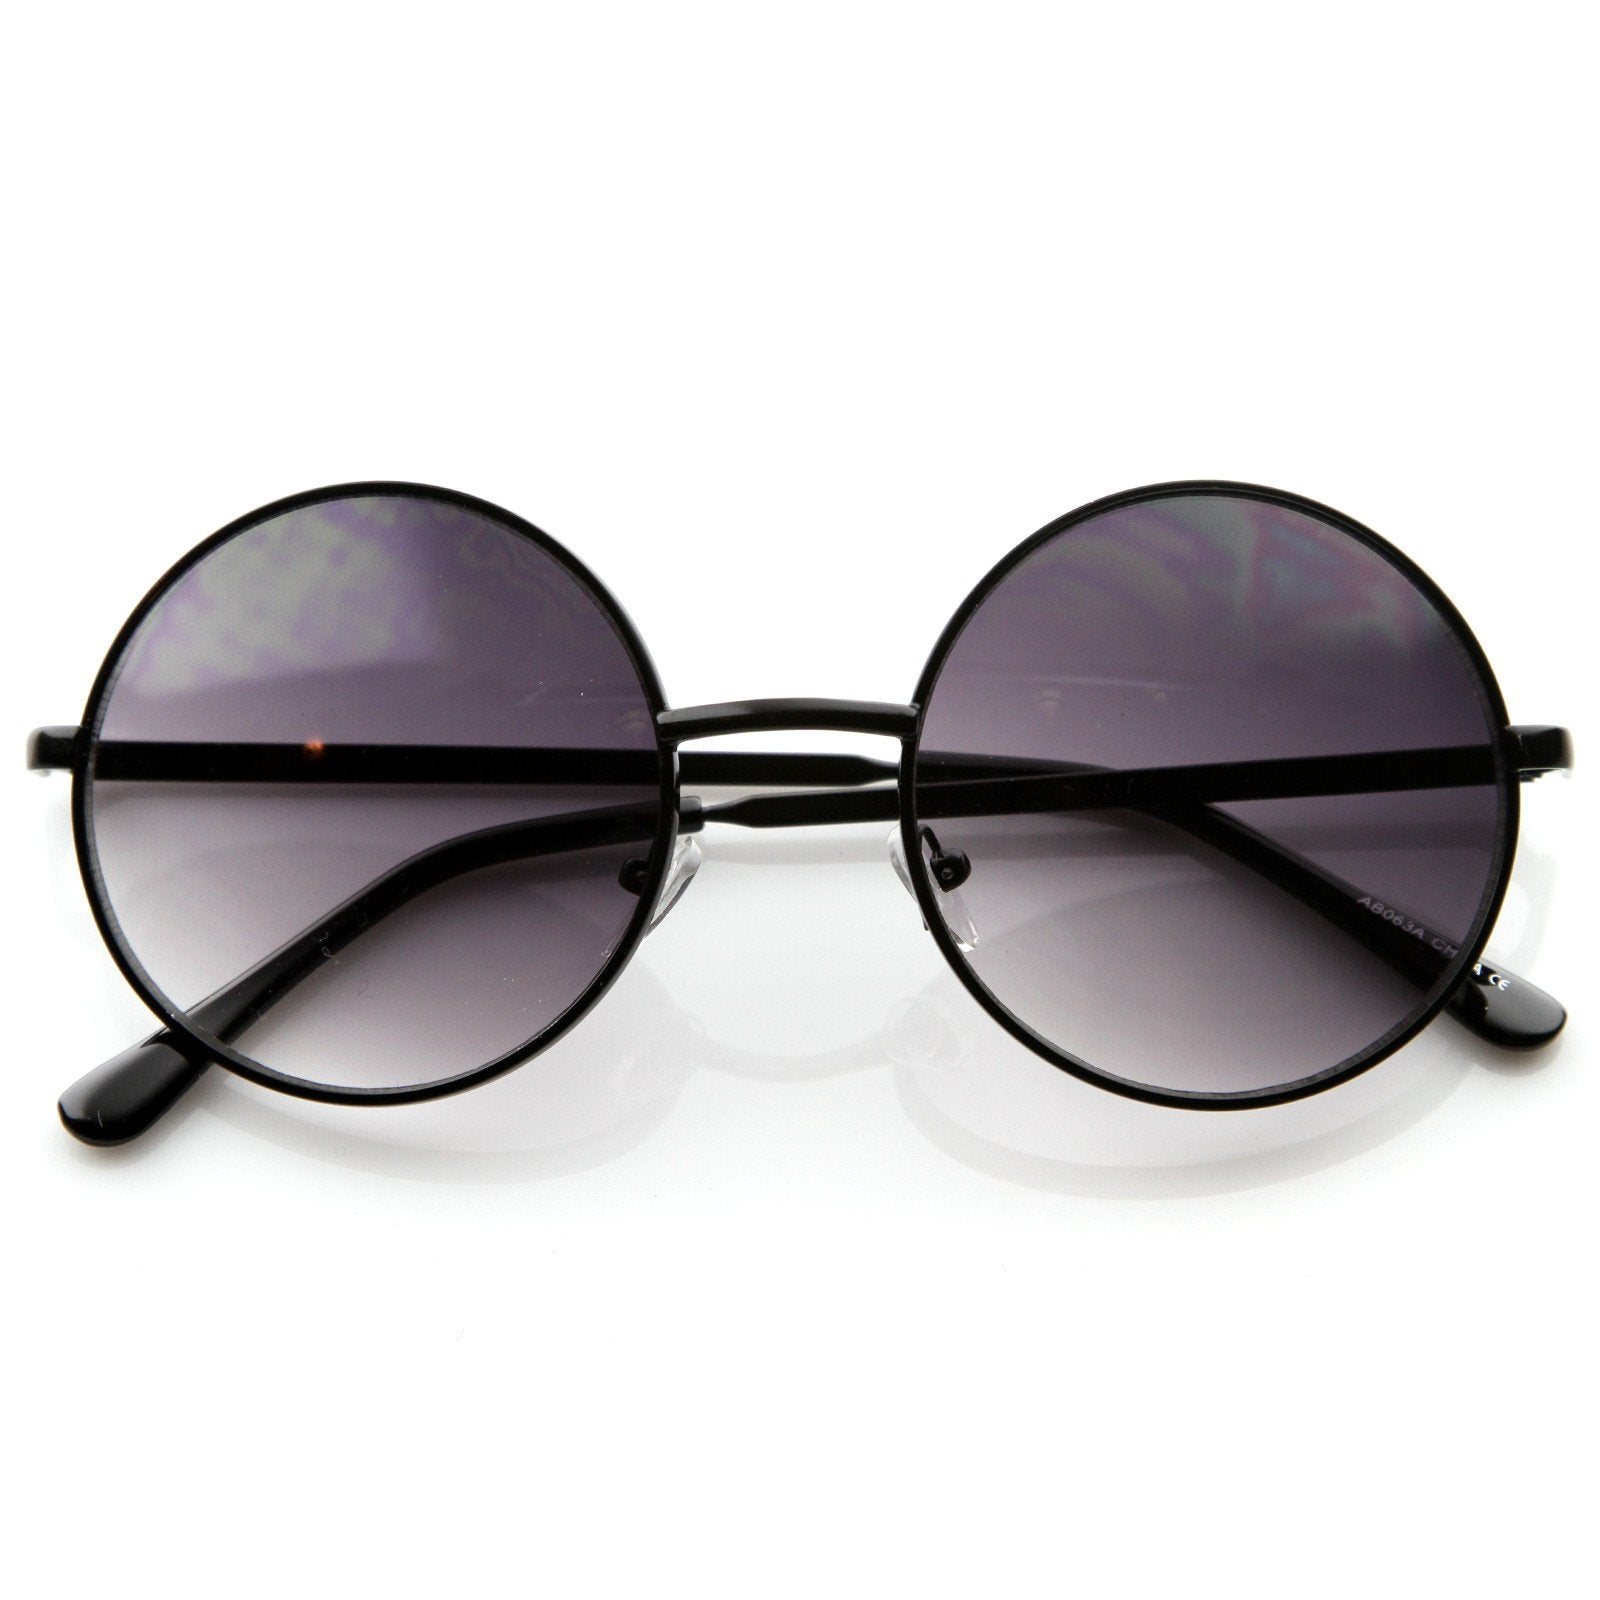 be759a36ff4 Designer Medium Round Metal Fashion Sunglasses 8570